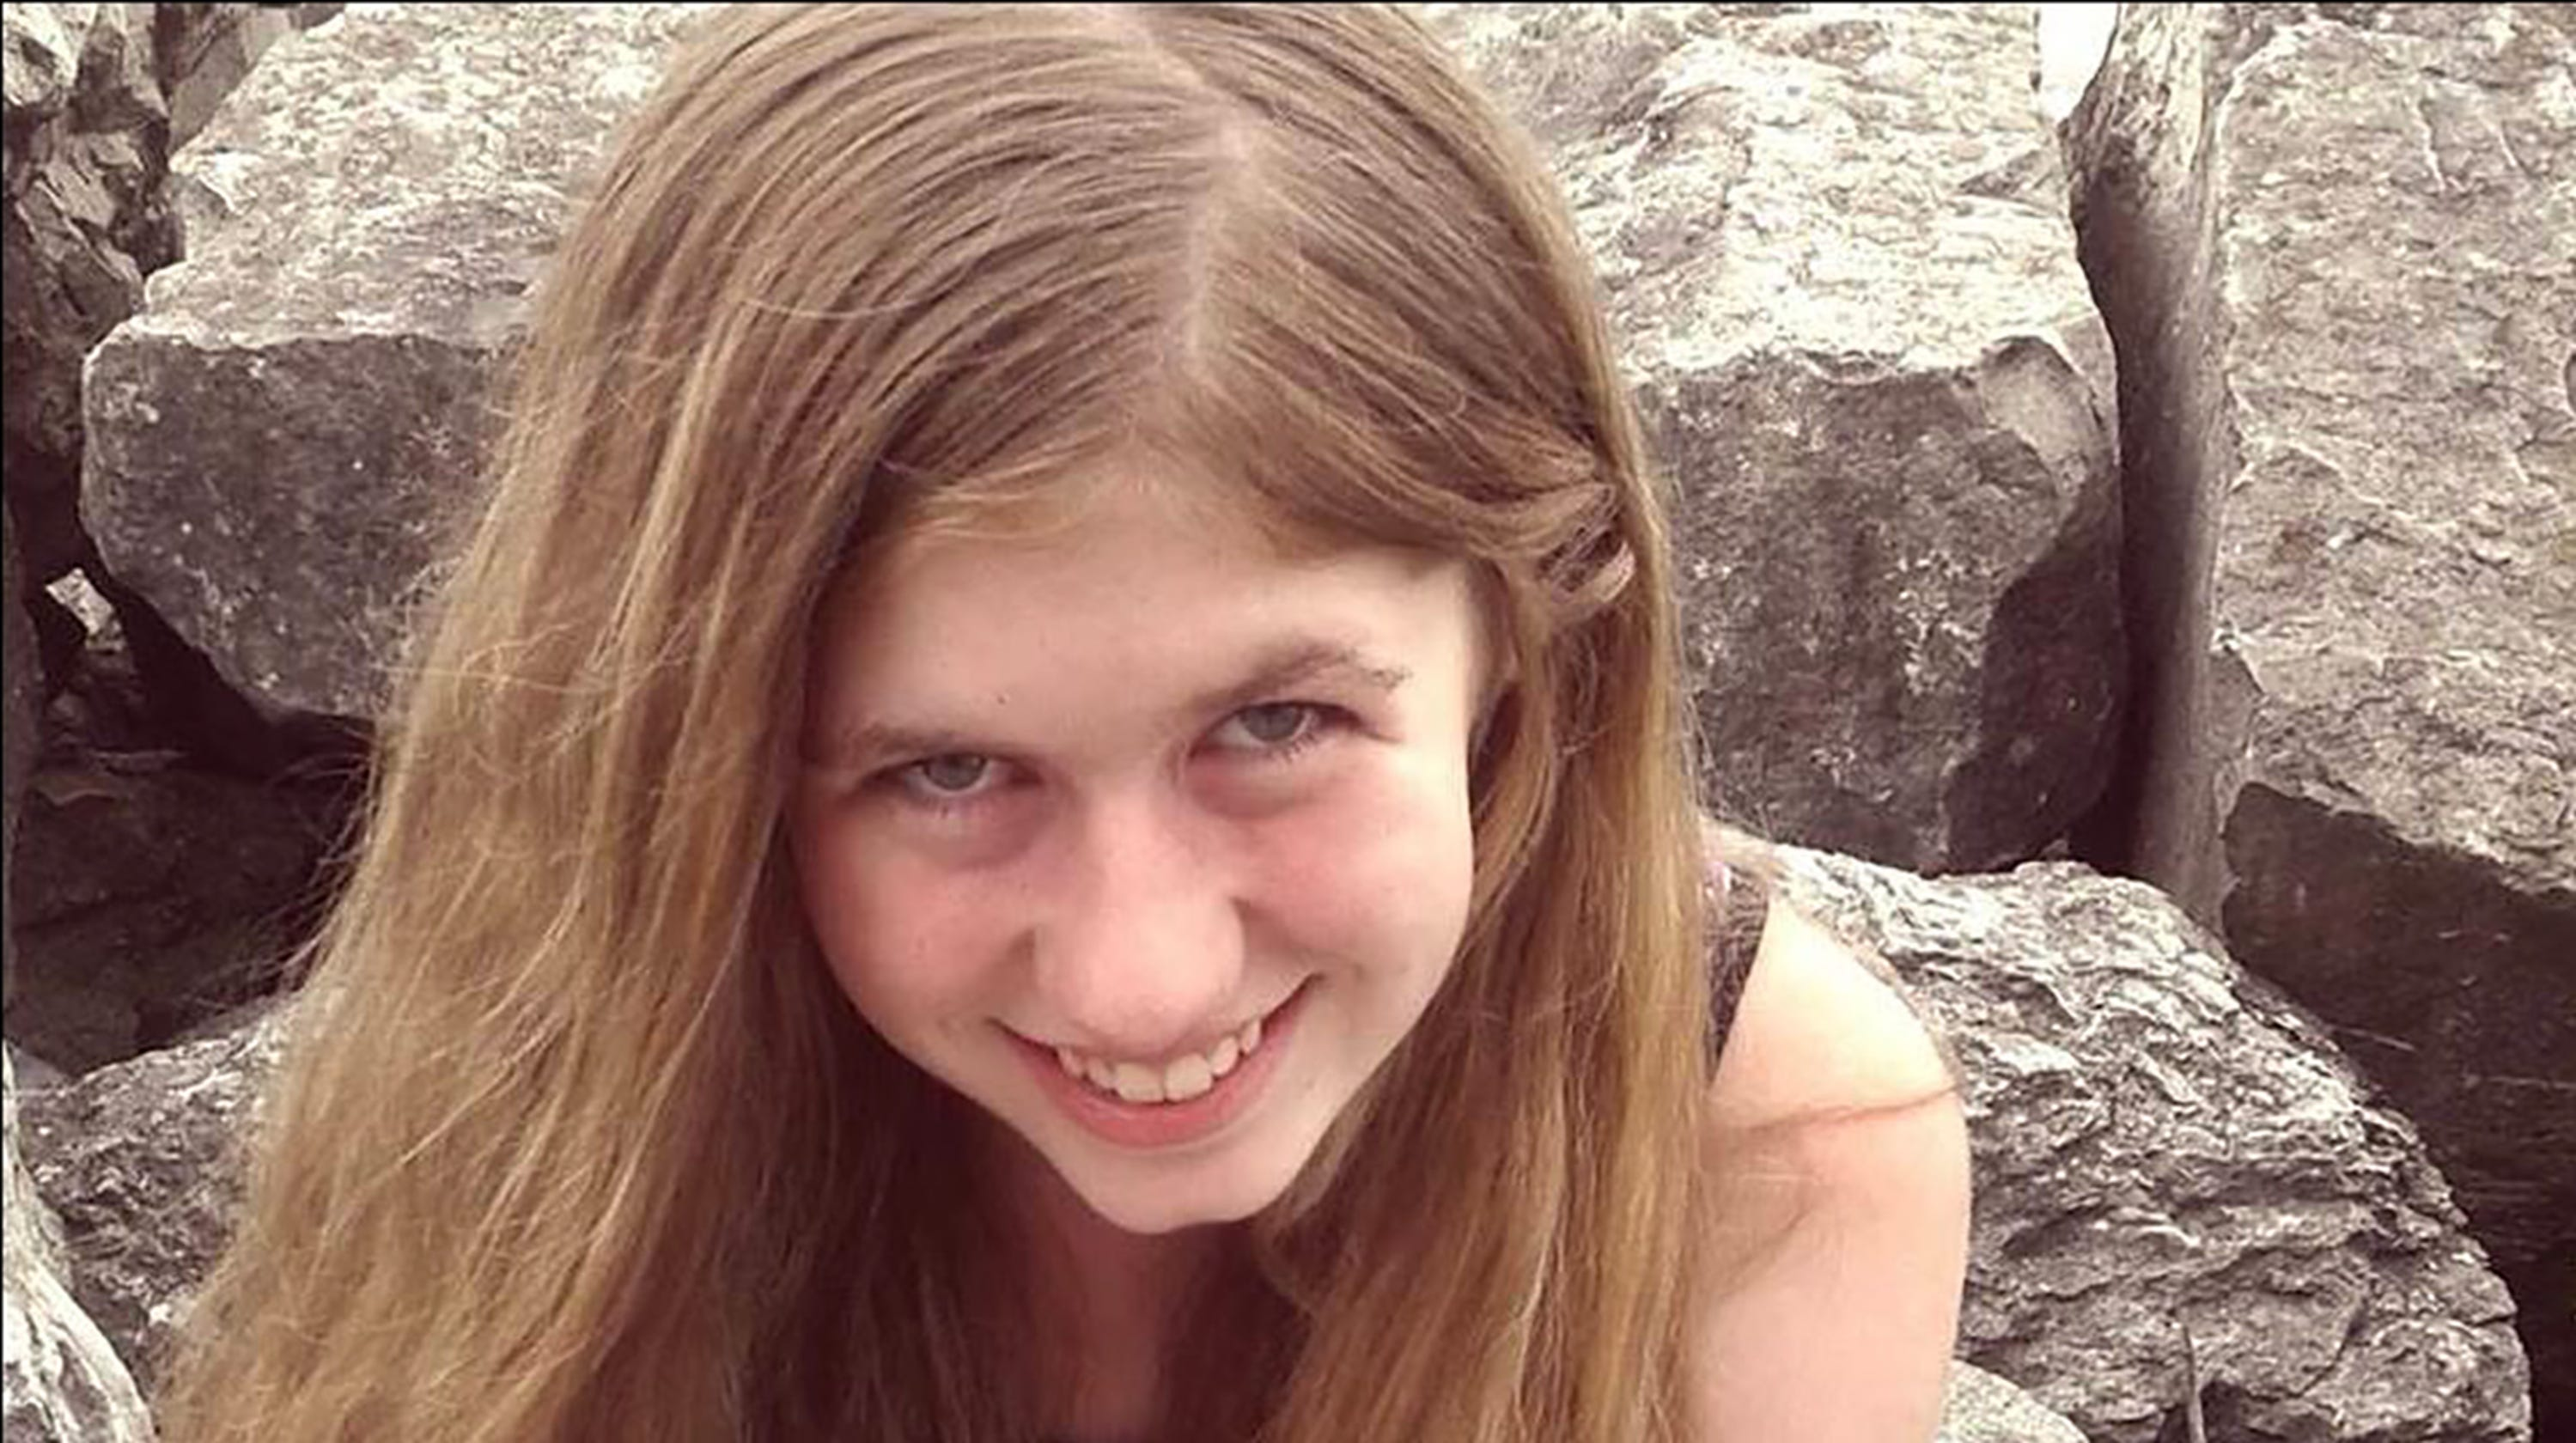 Missing Wisconsin teen Jayme Closs found alive: What we know